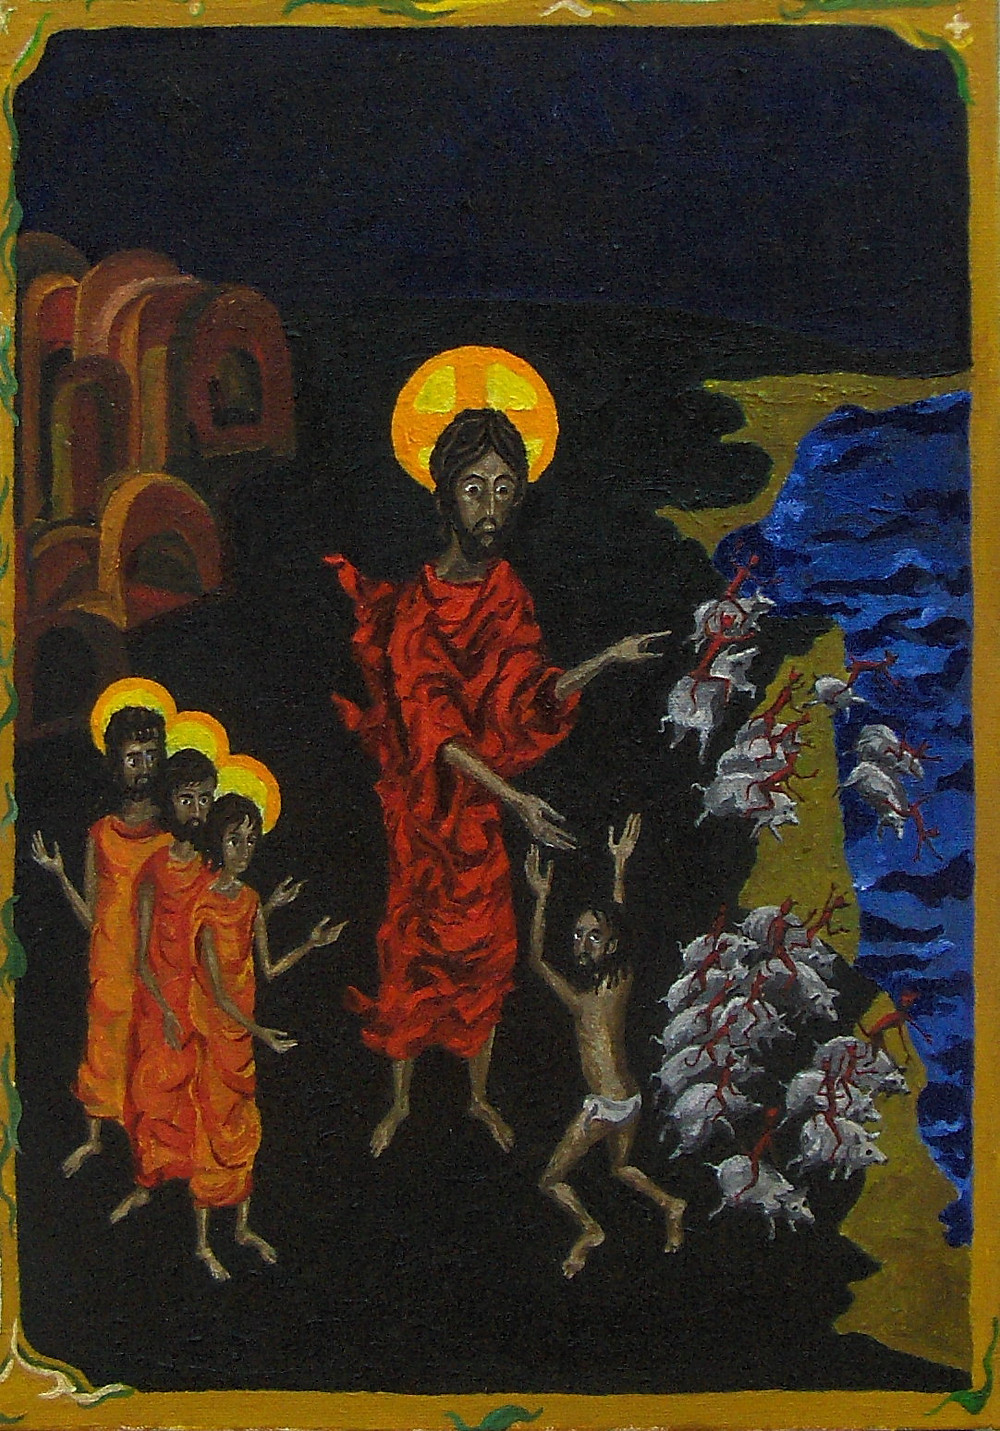 A painting of Jesus (in the center) wearing a red robe, healing the demoniac who is flanked by a horde of pigs jumping in the water. The disciples look on.